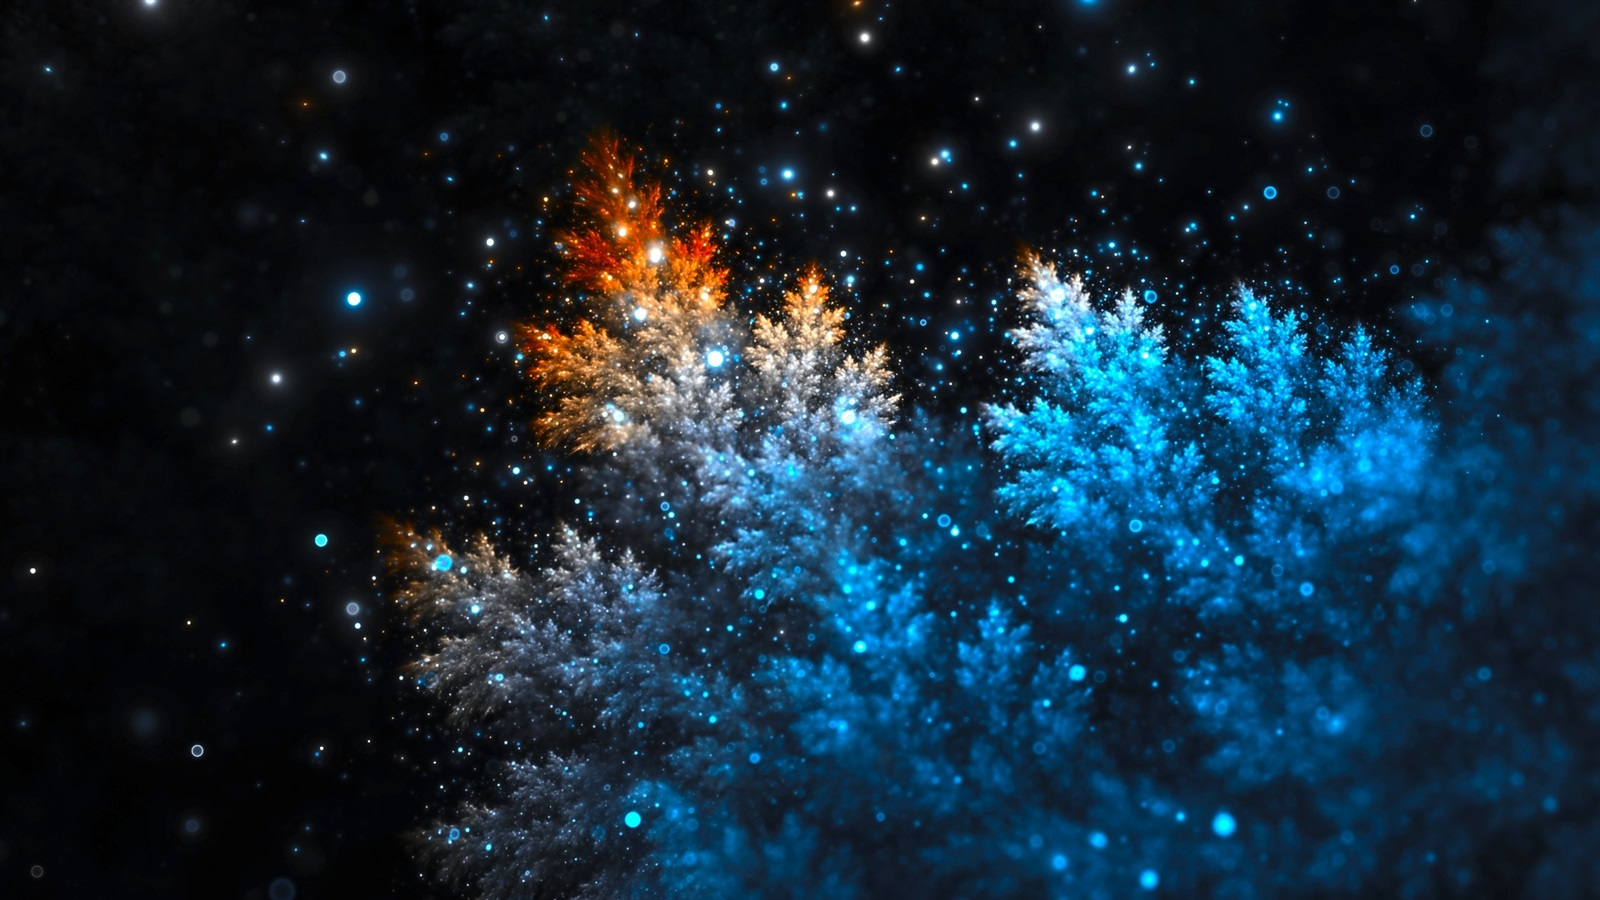 Wallpaper Creative Pictures Stars Night Tree Branches 19x1080 Full Hd 2k Picture Image